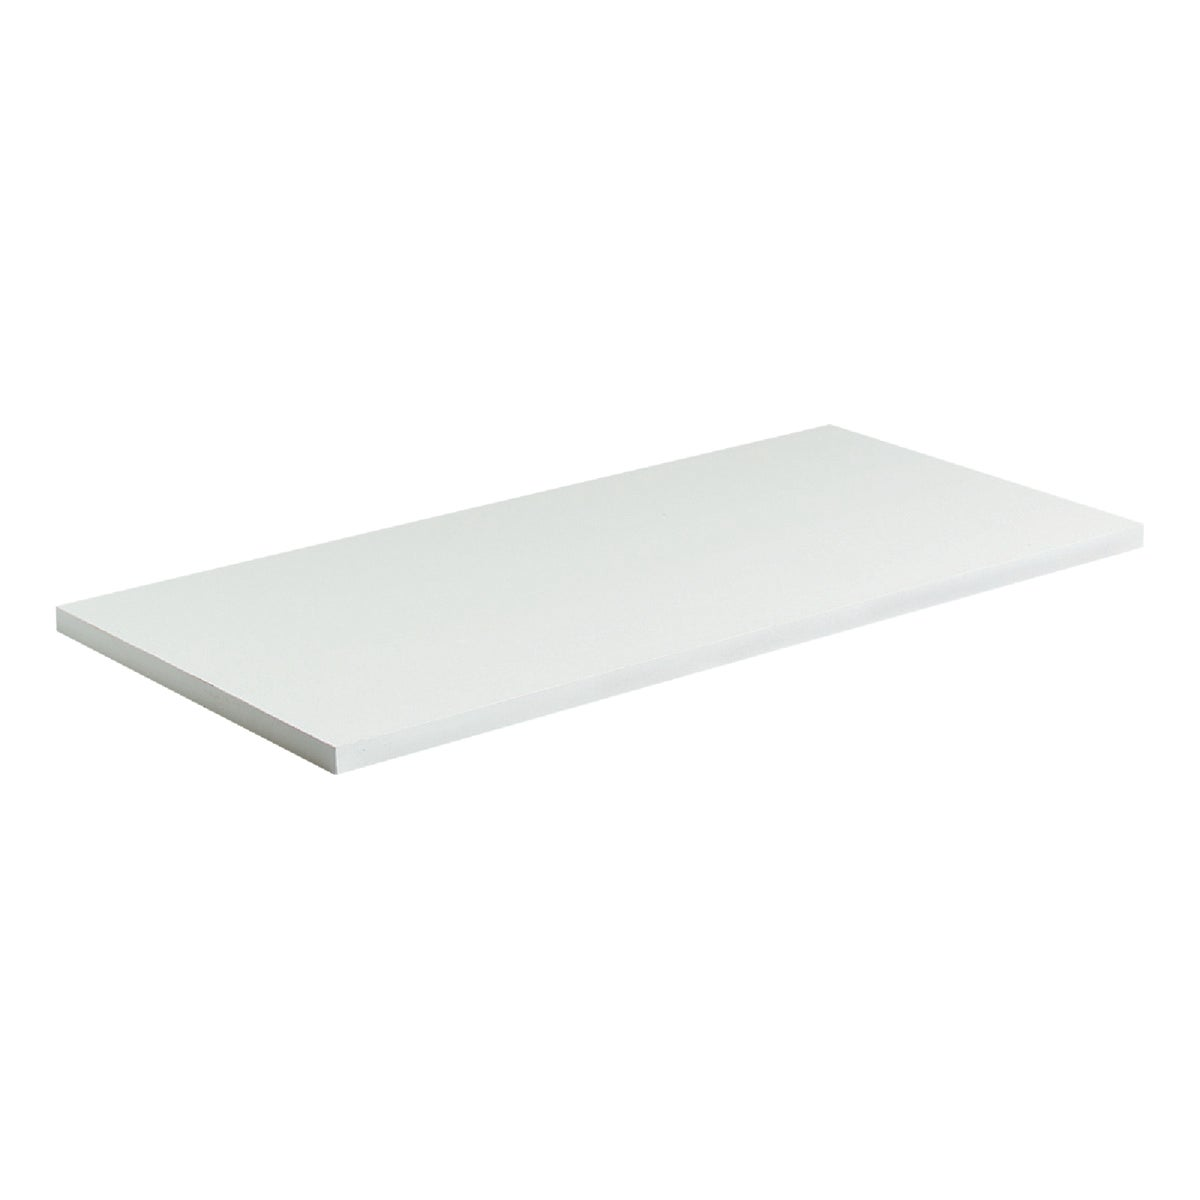 12X24 WHITE SHELF - 1980WH12X24 by Knape & Vogt Mfg Co